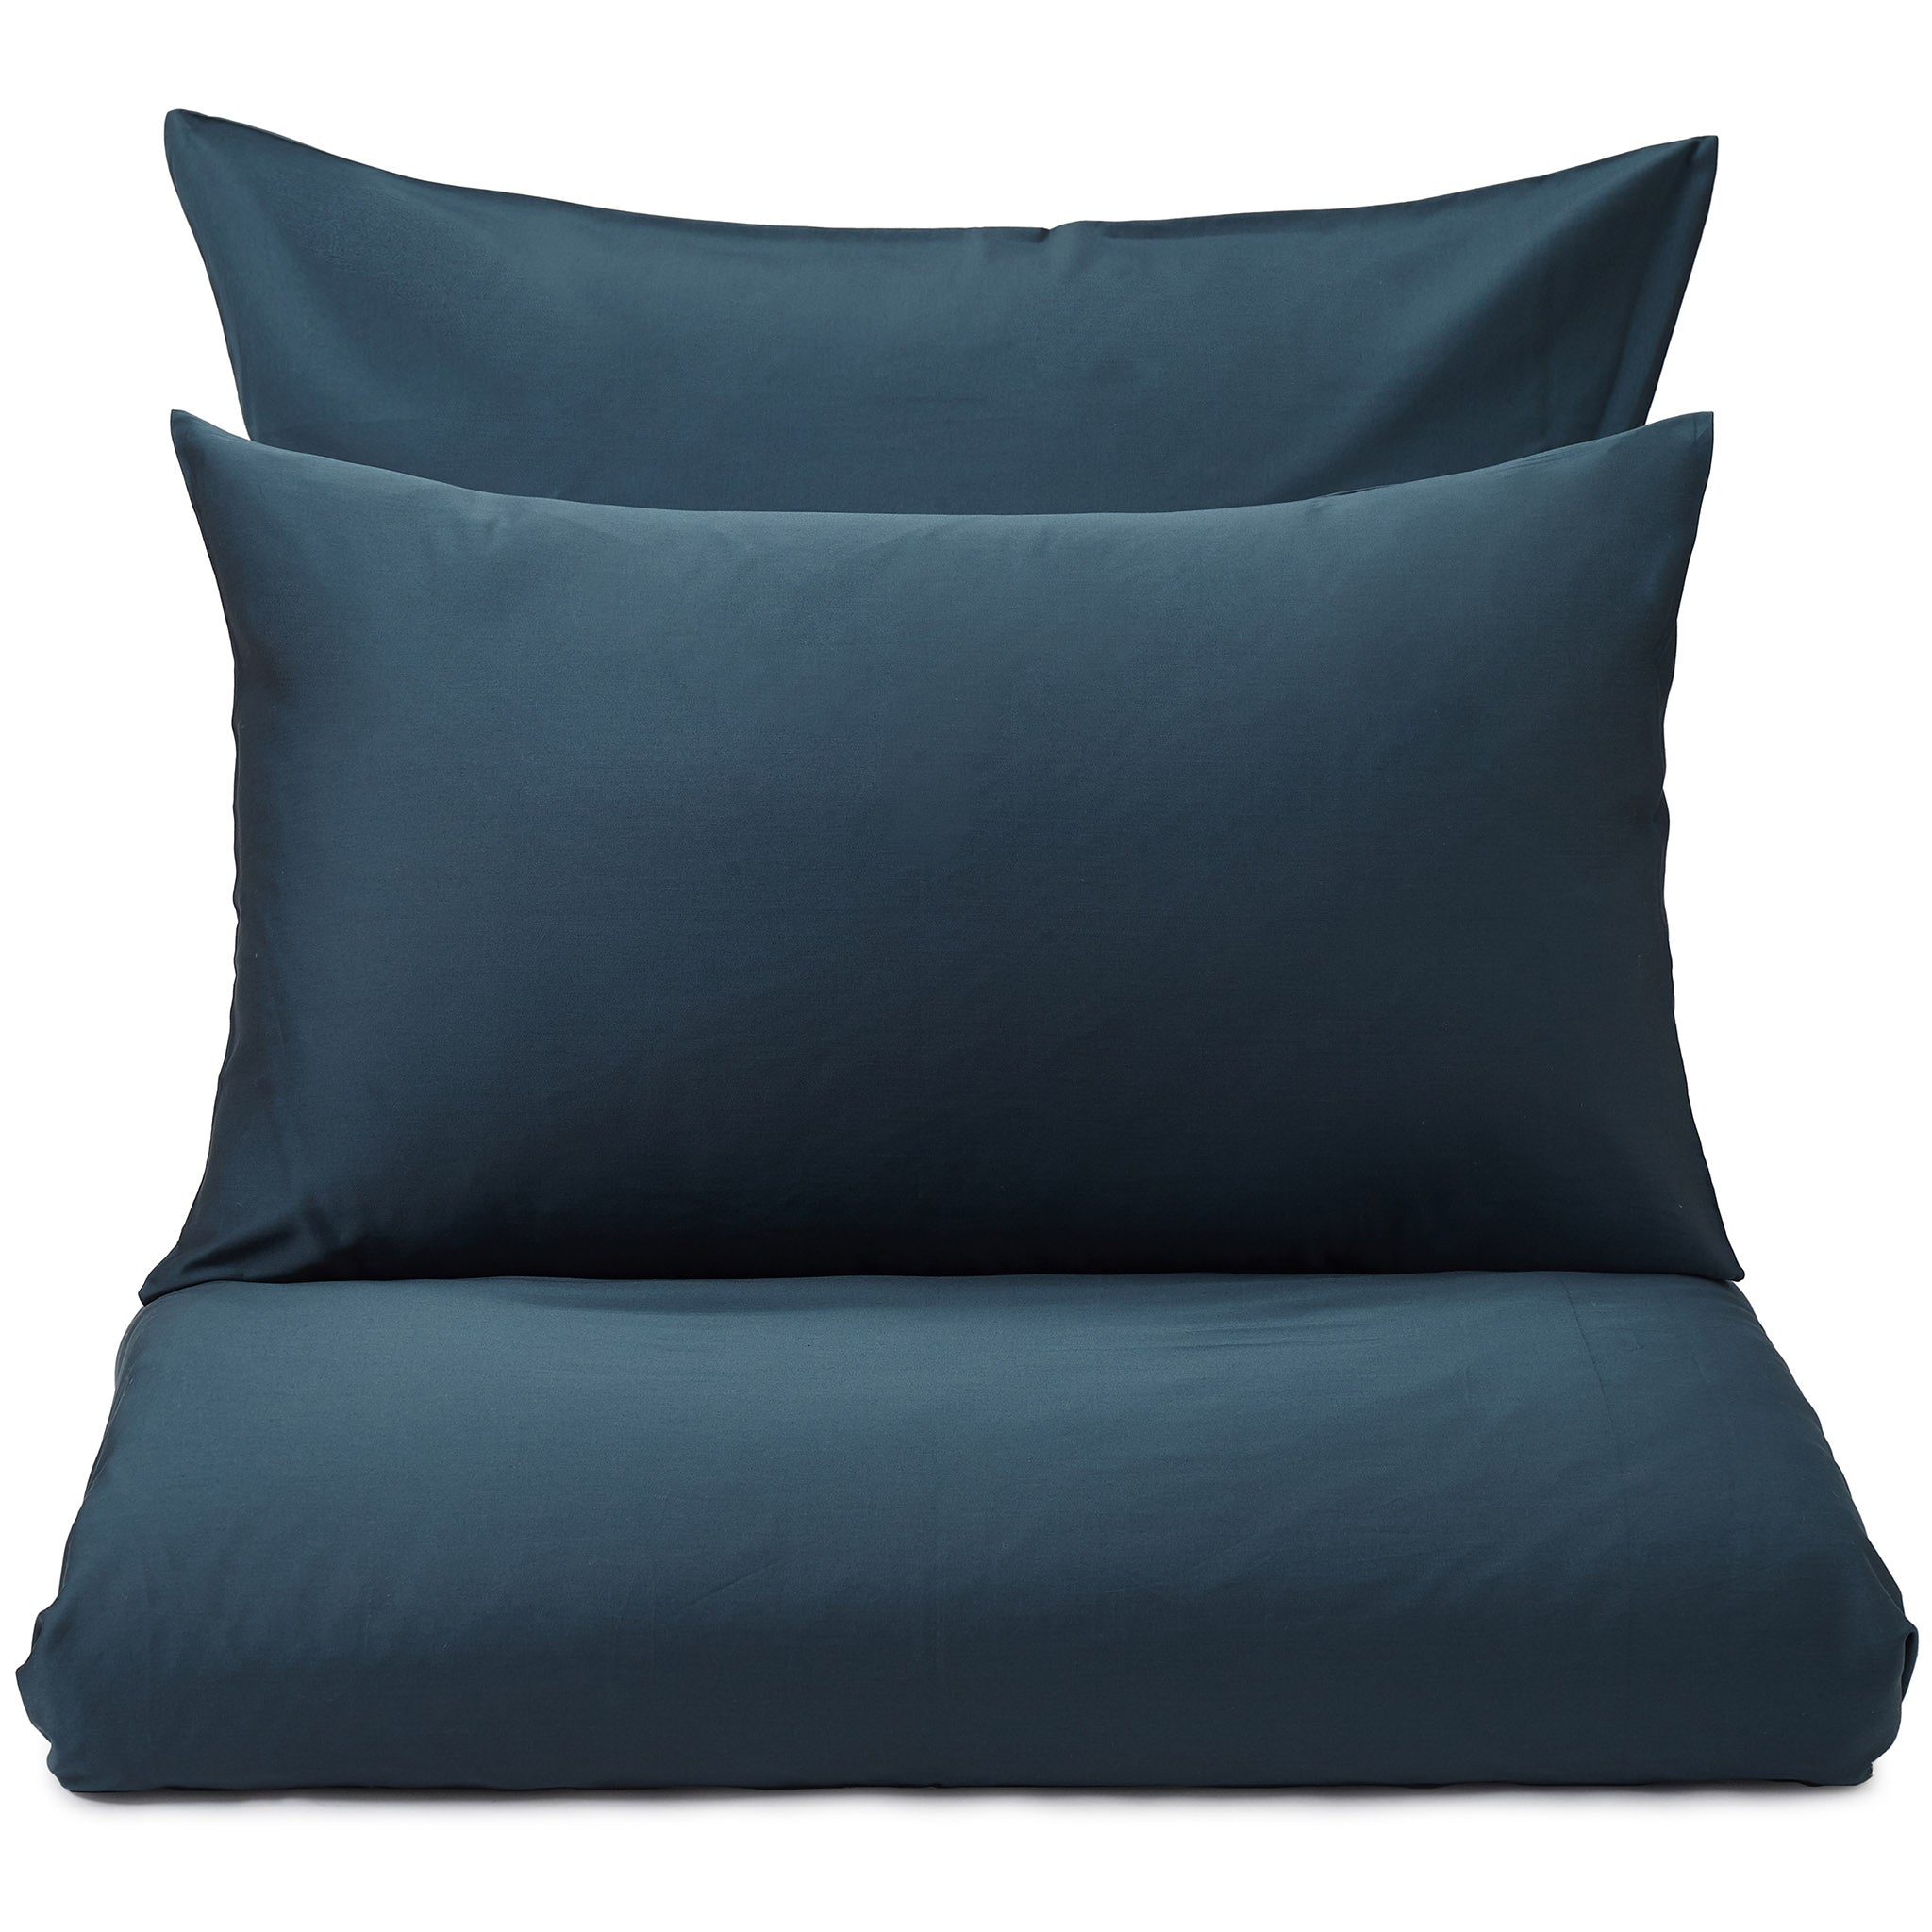 Millau duvet cover, teal, 100% cotton